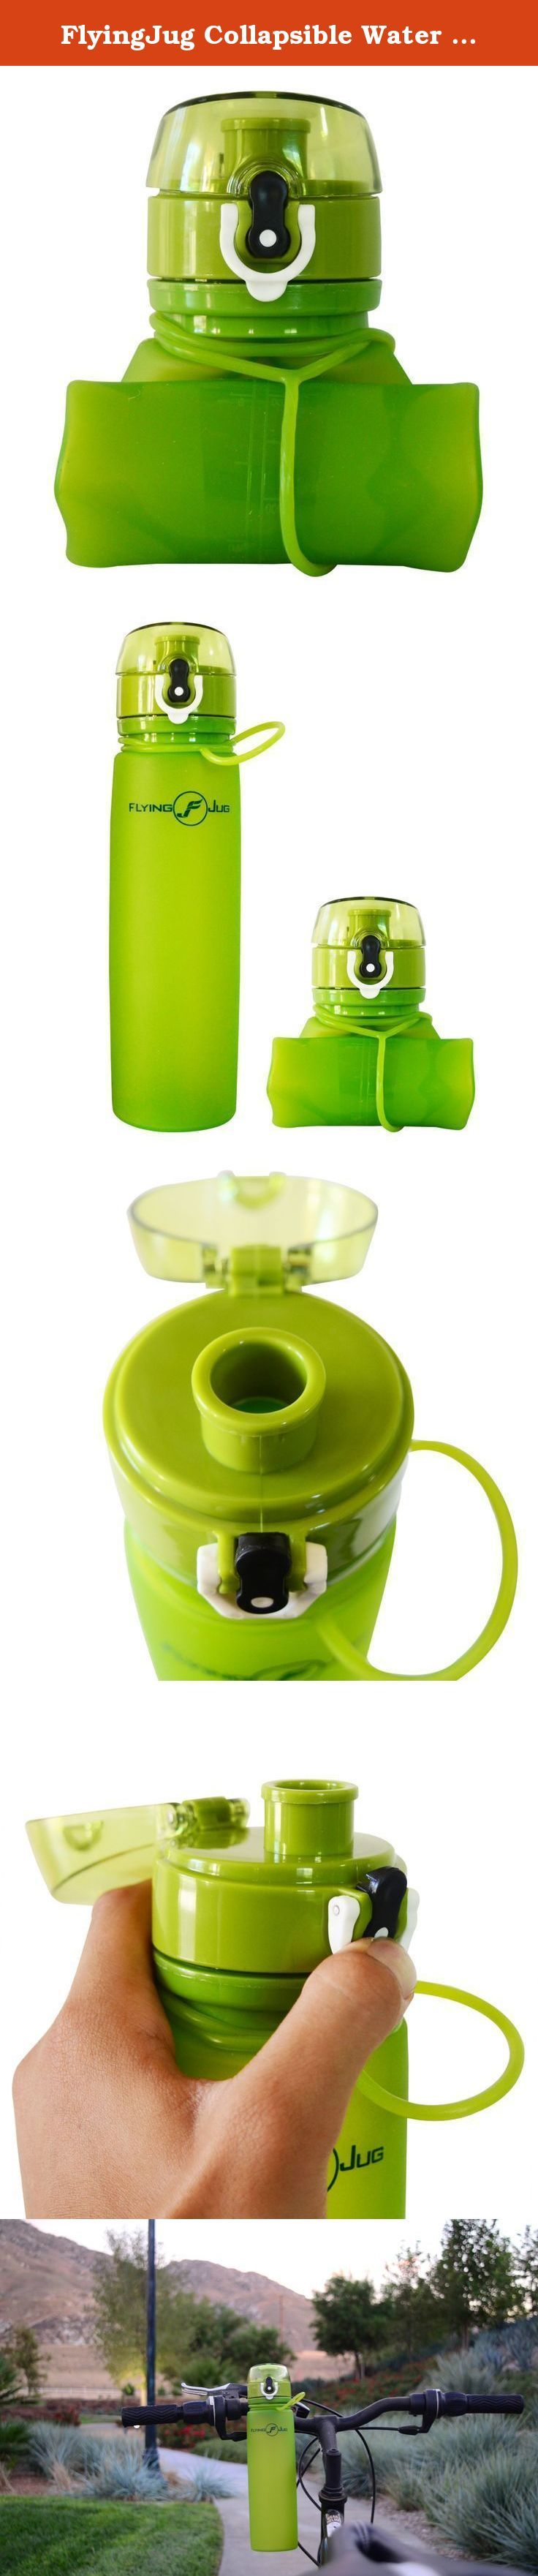 FlyingJug Collapsible Water Bottle - Leak Proof Push Button Cap - BPA Free, 700ml 23.7 ounce. Stay Hydrated With The Ultimate Jungle Green Sports Water Bottle! Do you constantly forget to drink water while running around doing chores or working those muscles at the gym? We will give you a good reason to hydrate yourself constantly with our marvelous sports bottle! Take it anywhere you go thanks to its compact design and collapsible properties. Durable Silicone Water Bottle Easy To Carry...